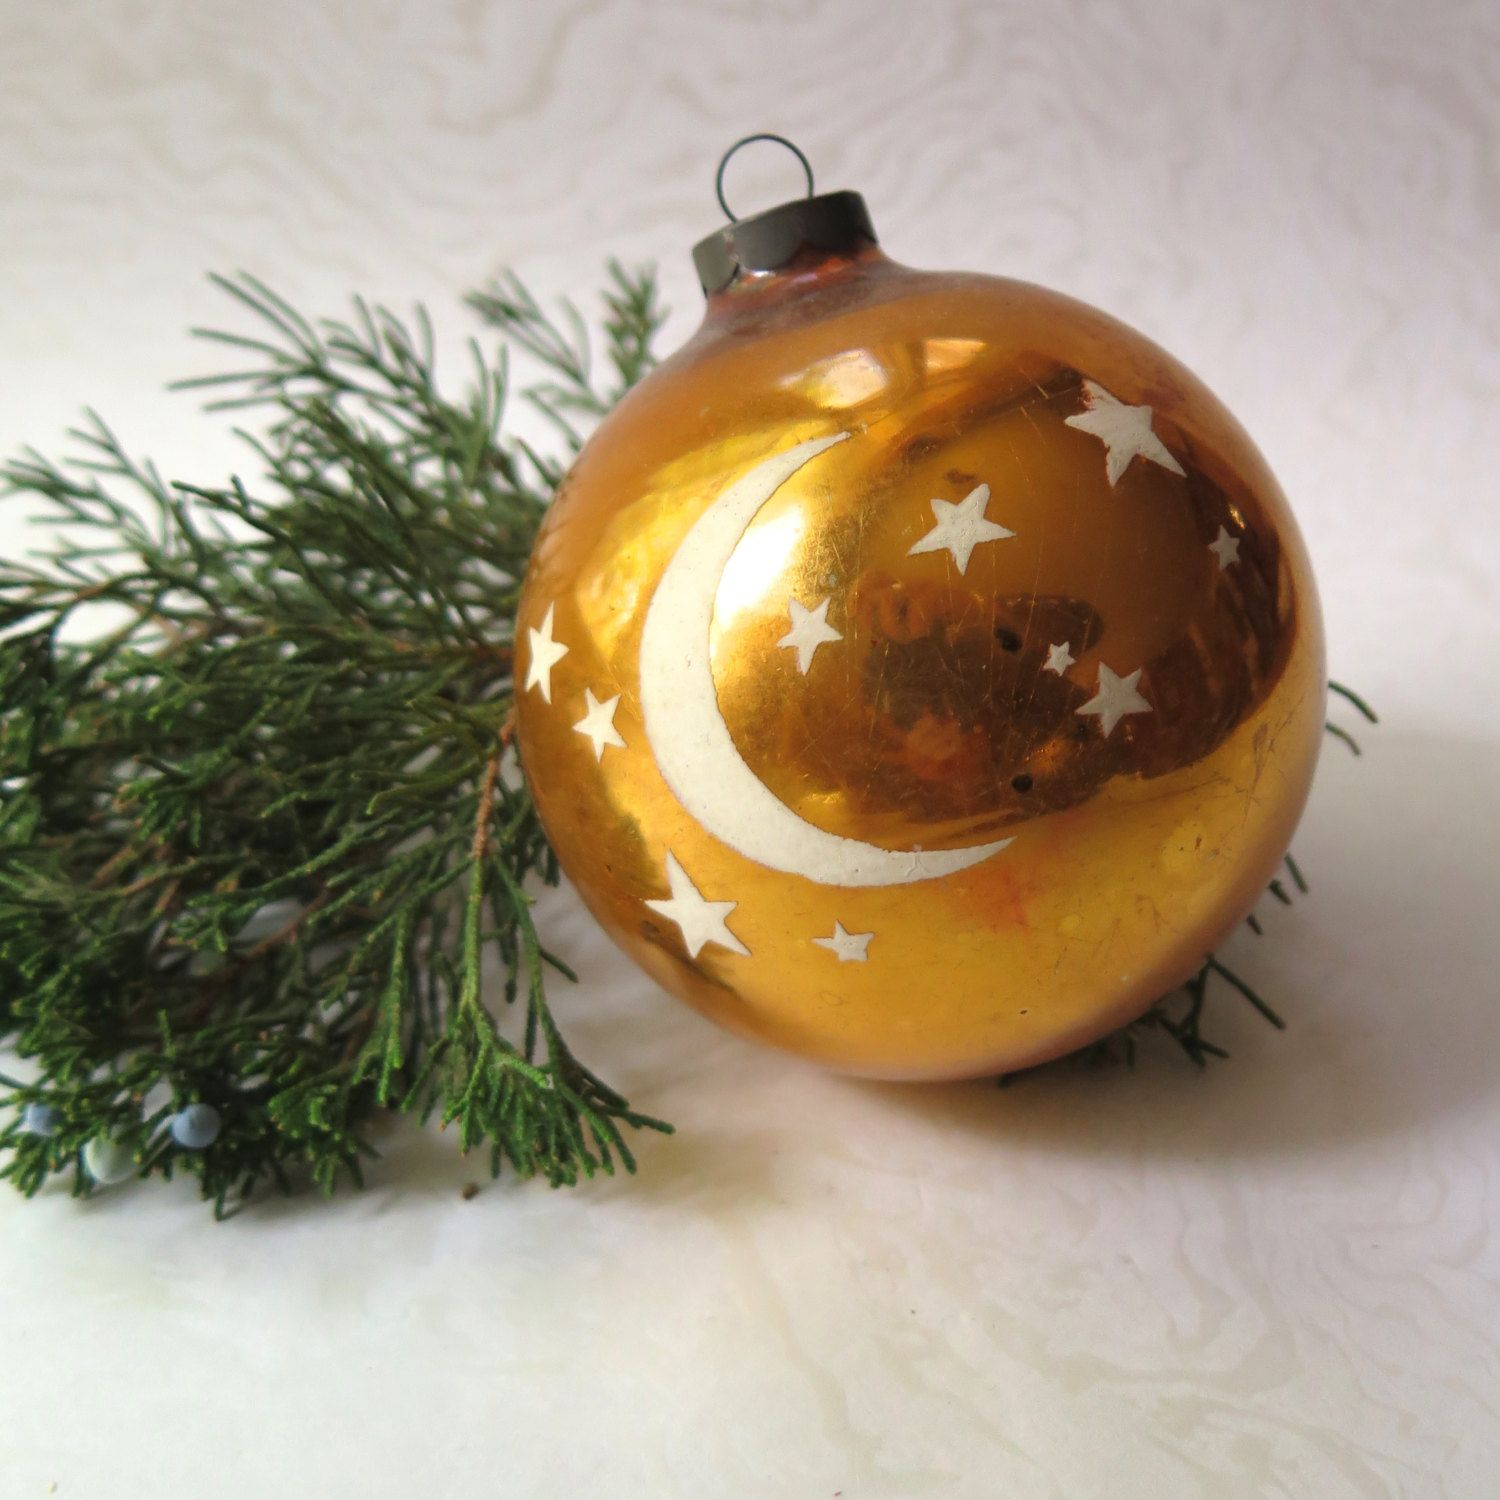 Vintage Extra Large Christmas Ornament Gold Ball Moon Stars Etsy Large Christmas Ornaments Christmas Ornaments Shiny Brite Ornaments